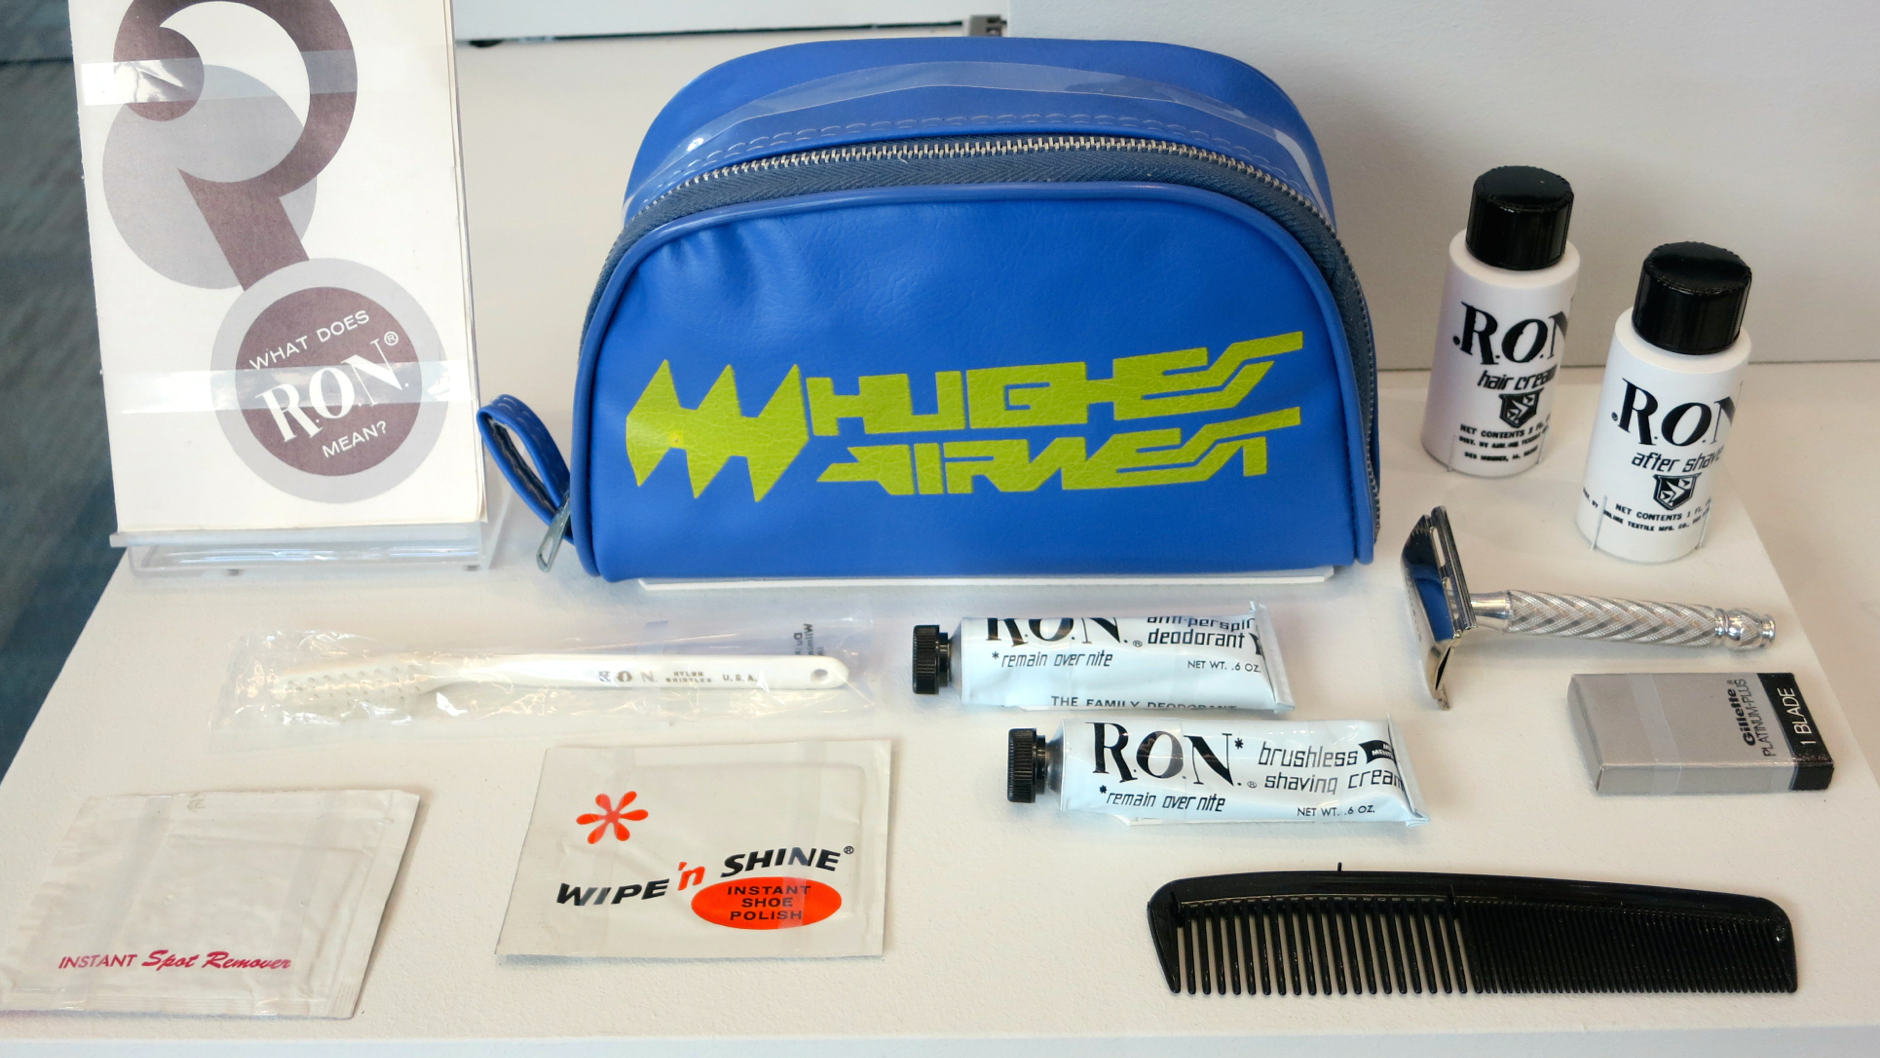 From now defunct Hughes Airwest. Check out the bottle of haircream and tube of deodorant! (Photo: Chris McGinnis)